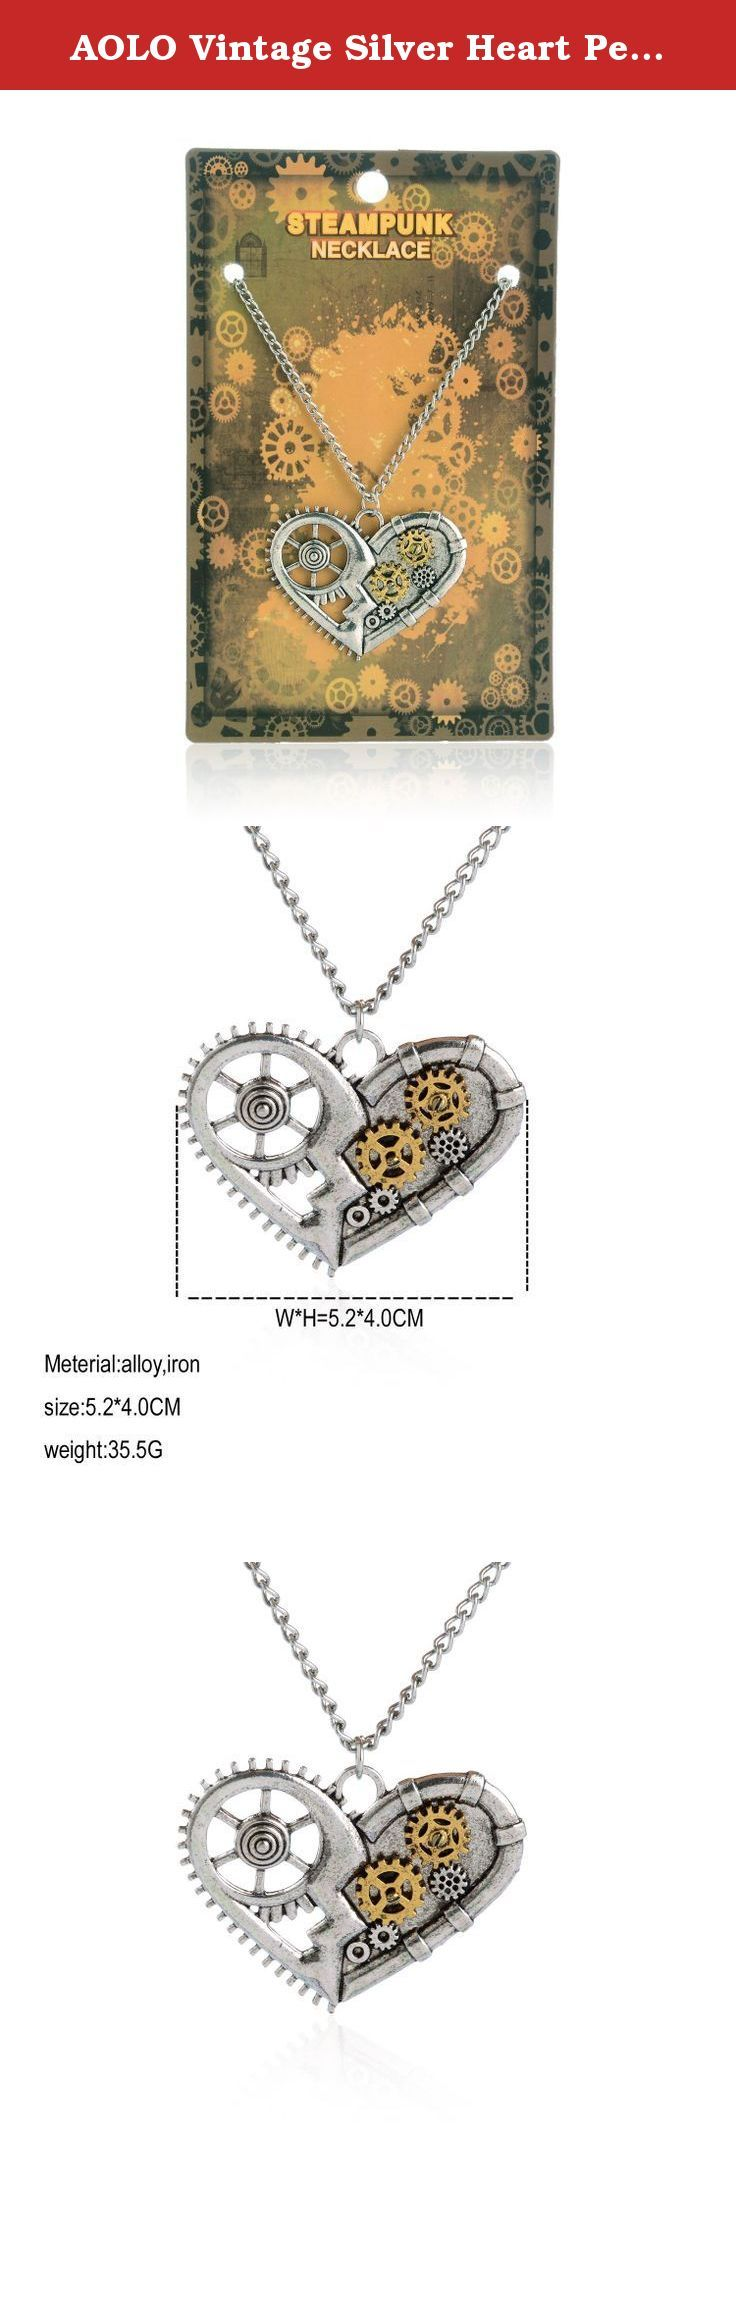 """AOLO Vintage Silver Heart Pendant Necklace Gear Charm Steampunk Necklaces. Originally, steampunk is a subgenre of fantasy and speculative fiction which came into prominence in 1980s and early 1990s. It could be described by the slogan """"What the past would like if in the future happened sooner."""" It includes fiction with science fiction, fantasy or horror themes. Nowadays, steampunk is more than a genre of fiction, it extends to fashion, engineering, music and for some, a lifestyle. Among..."""